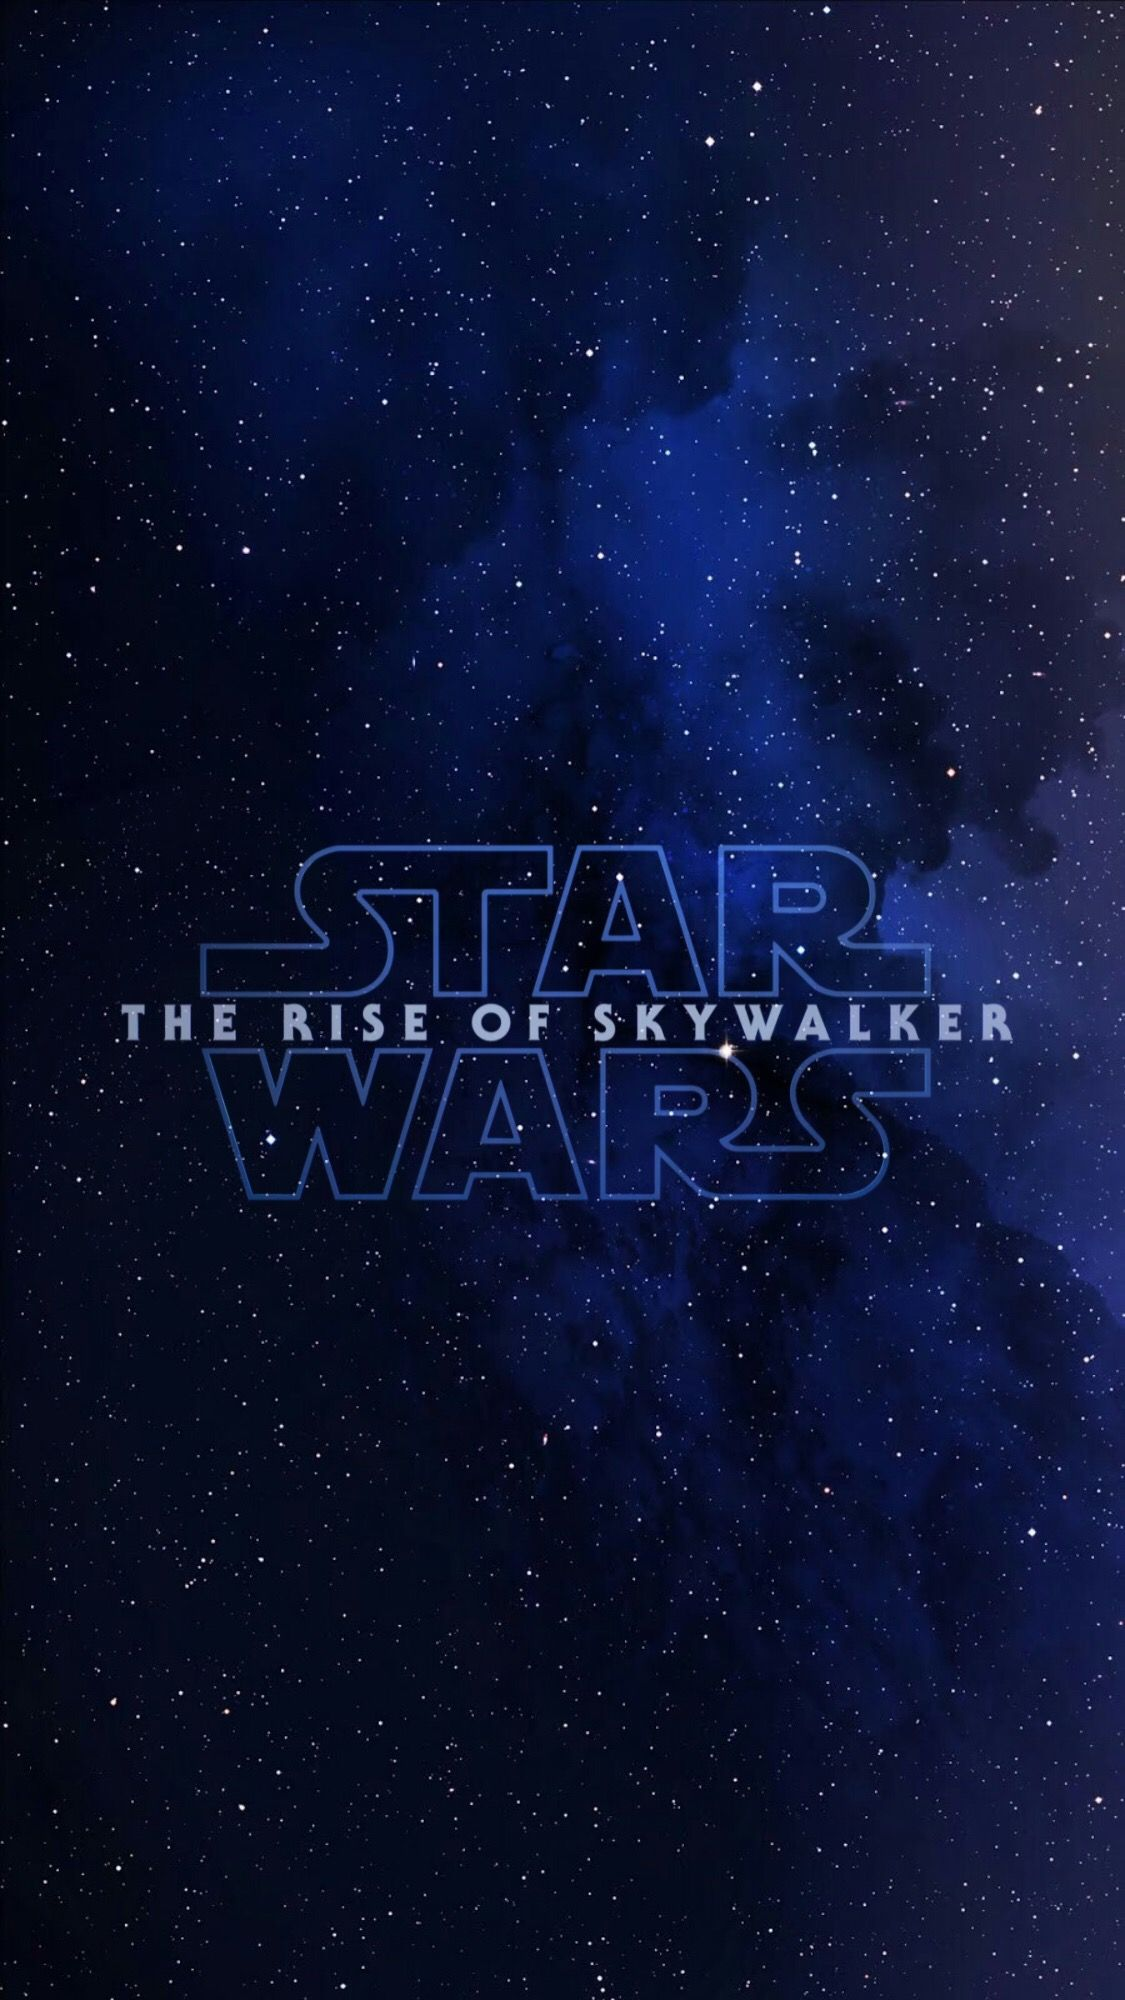 Star Wars Episode Ix The Rise Of Skywalker スターウォーズ